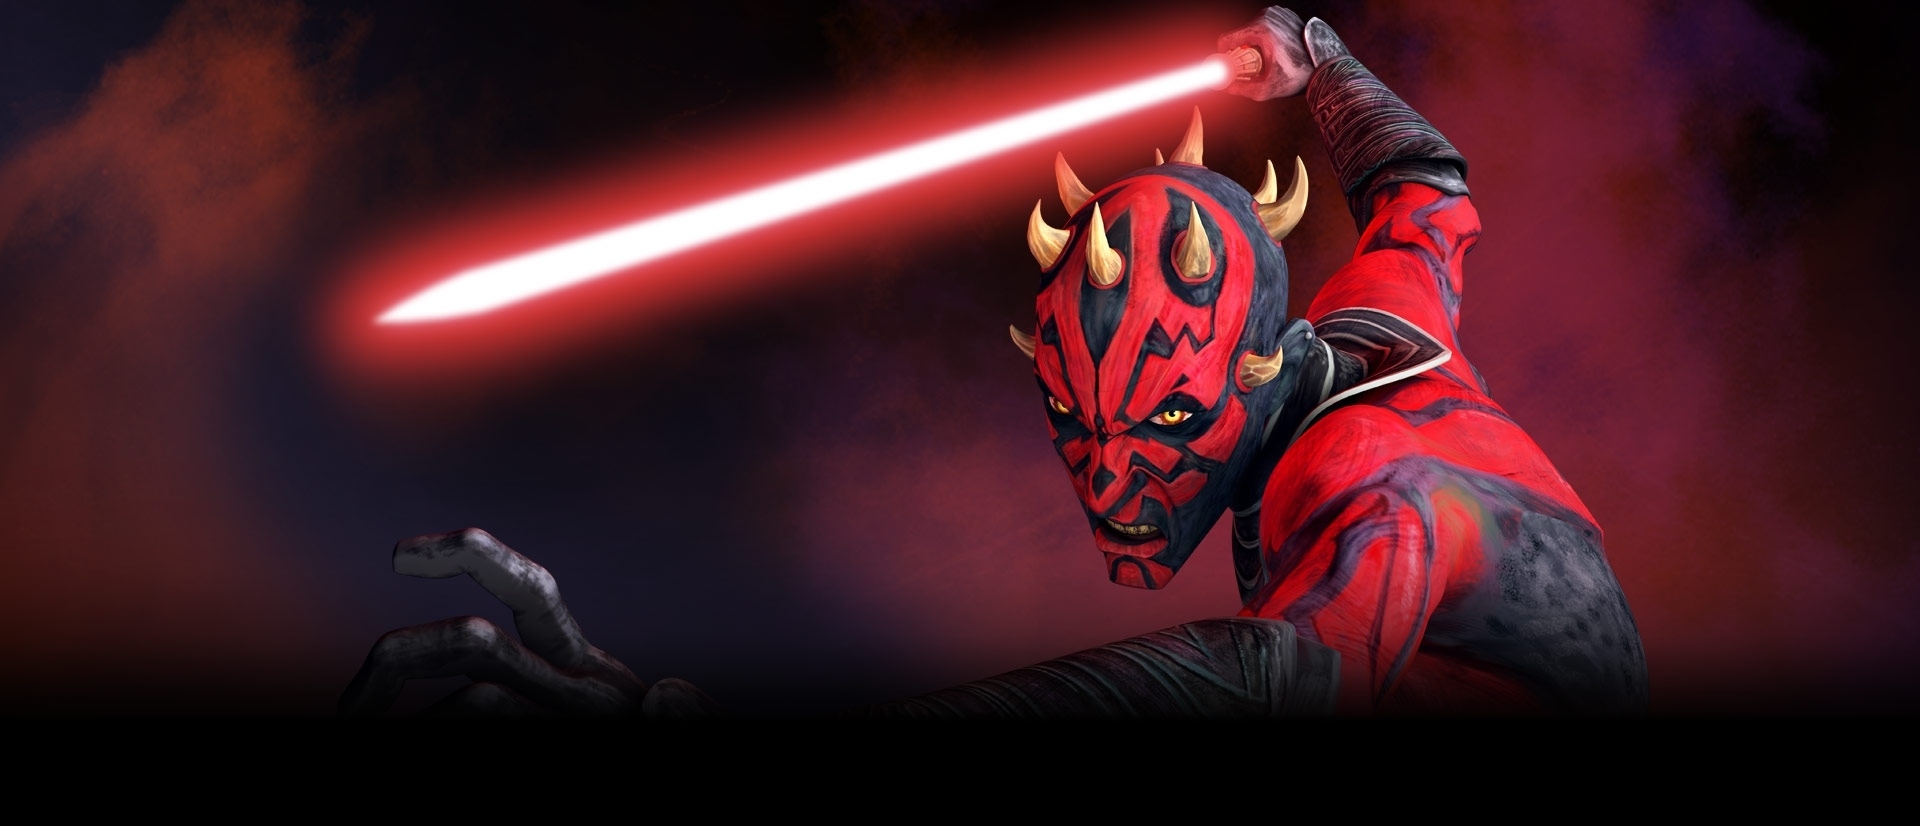 darth maul returns - sharenator